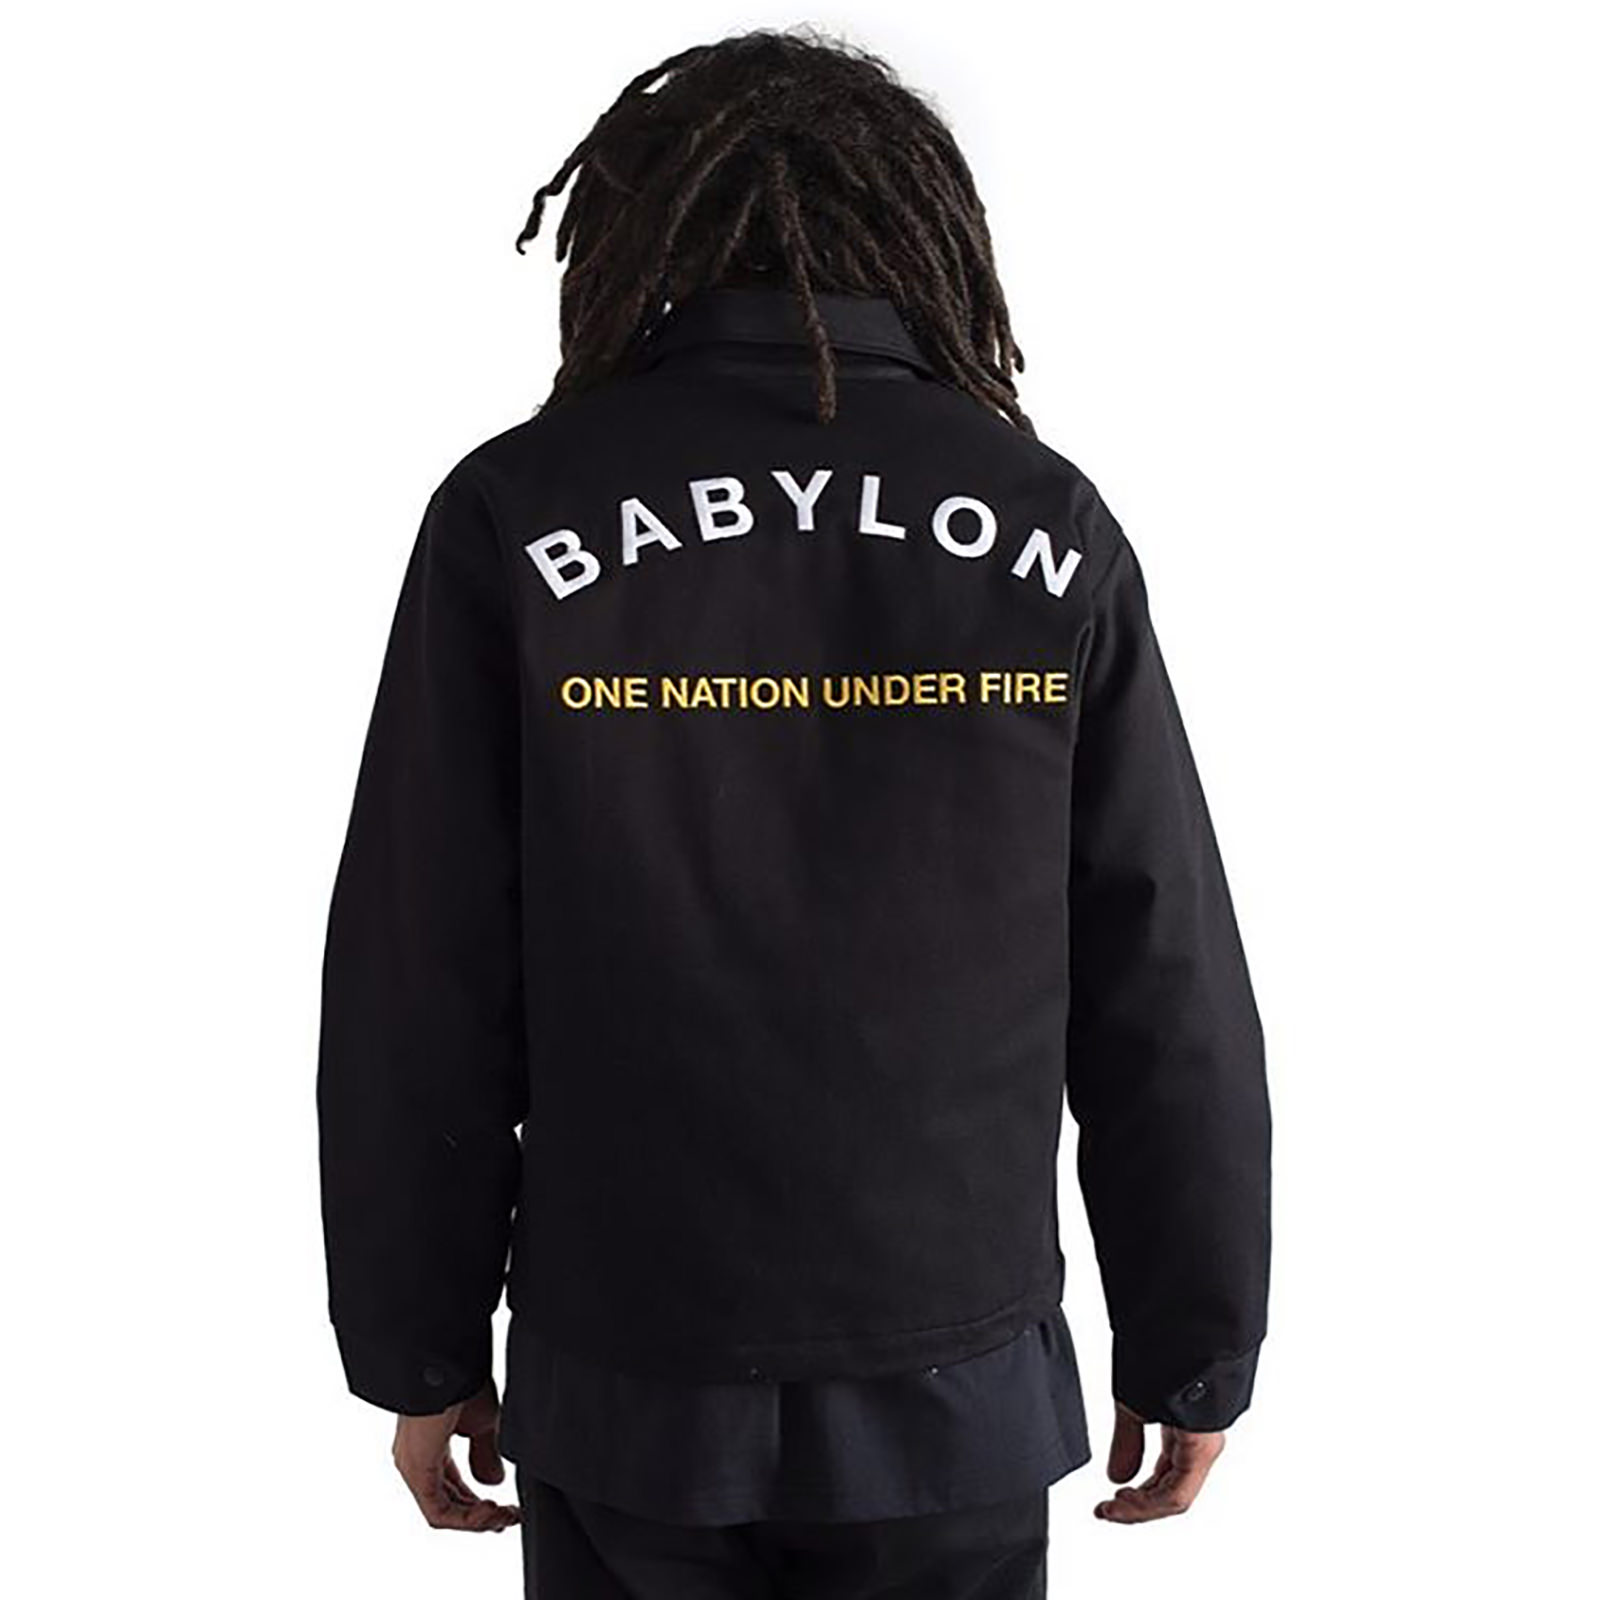 582d3b67a3613c870b80dbc5_babylon-under-fire-jacket-03